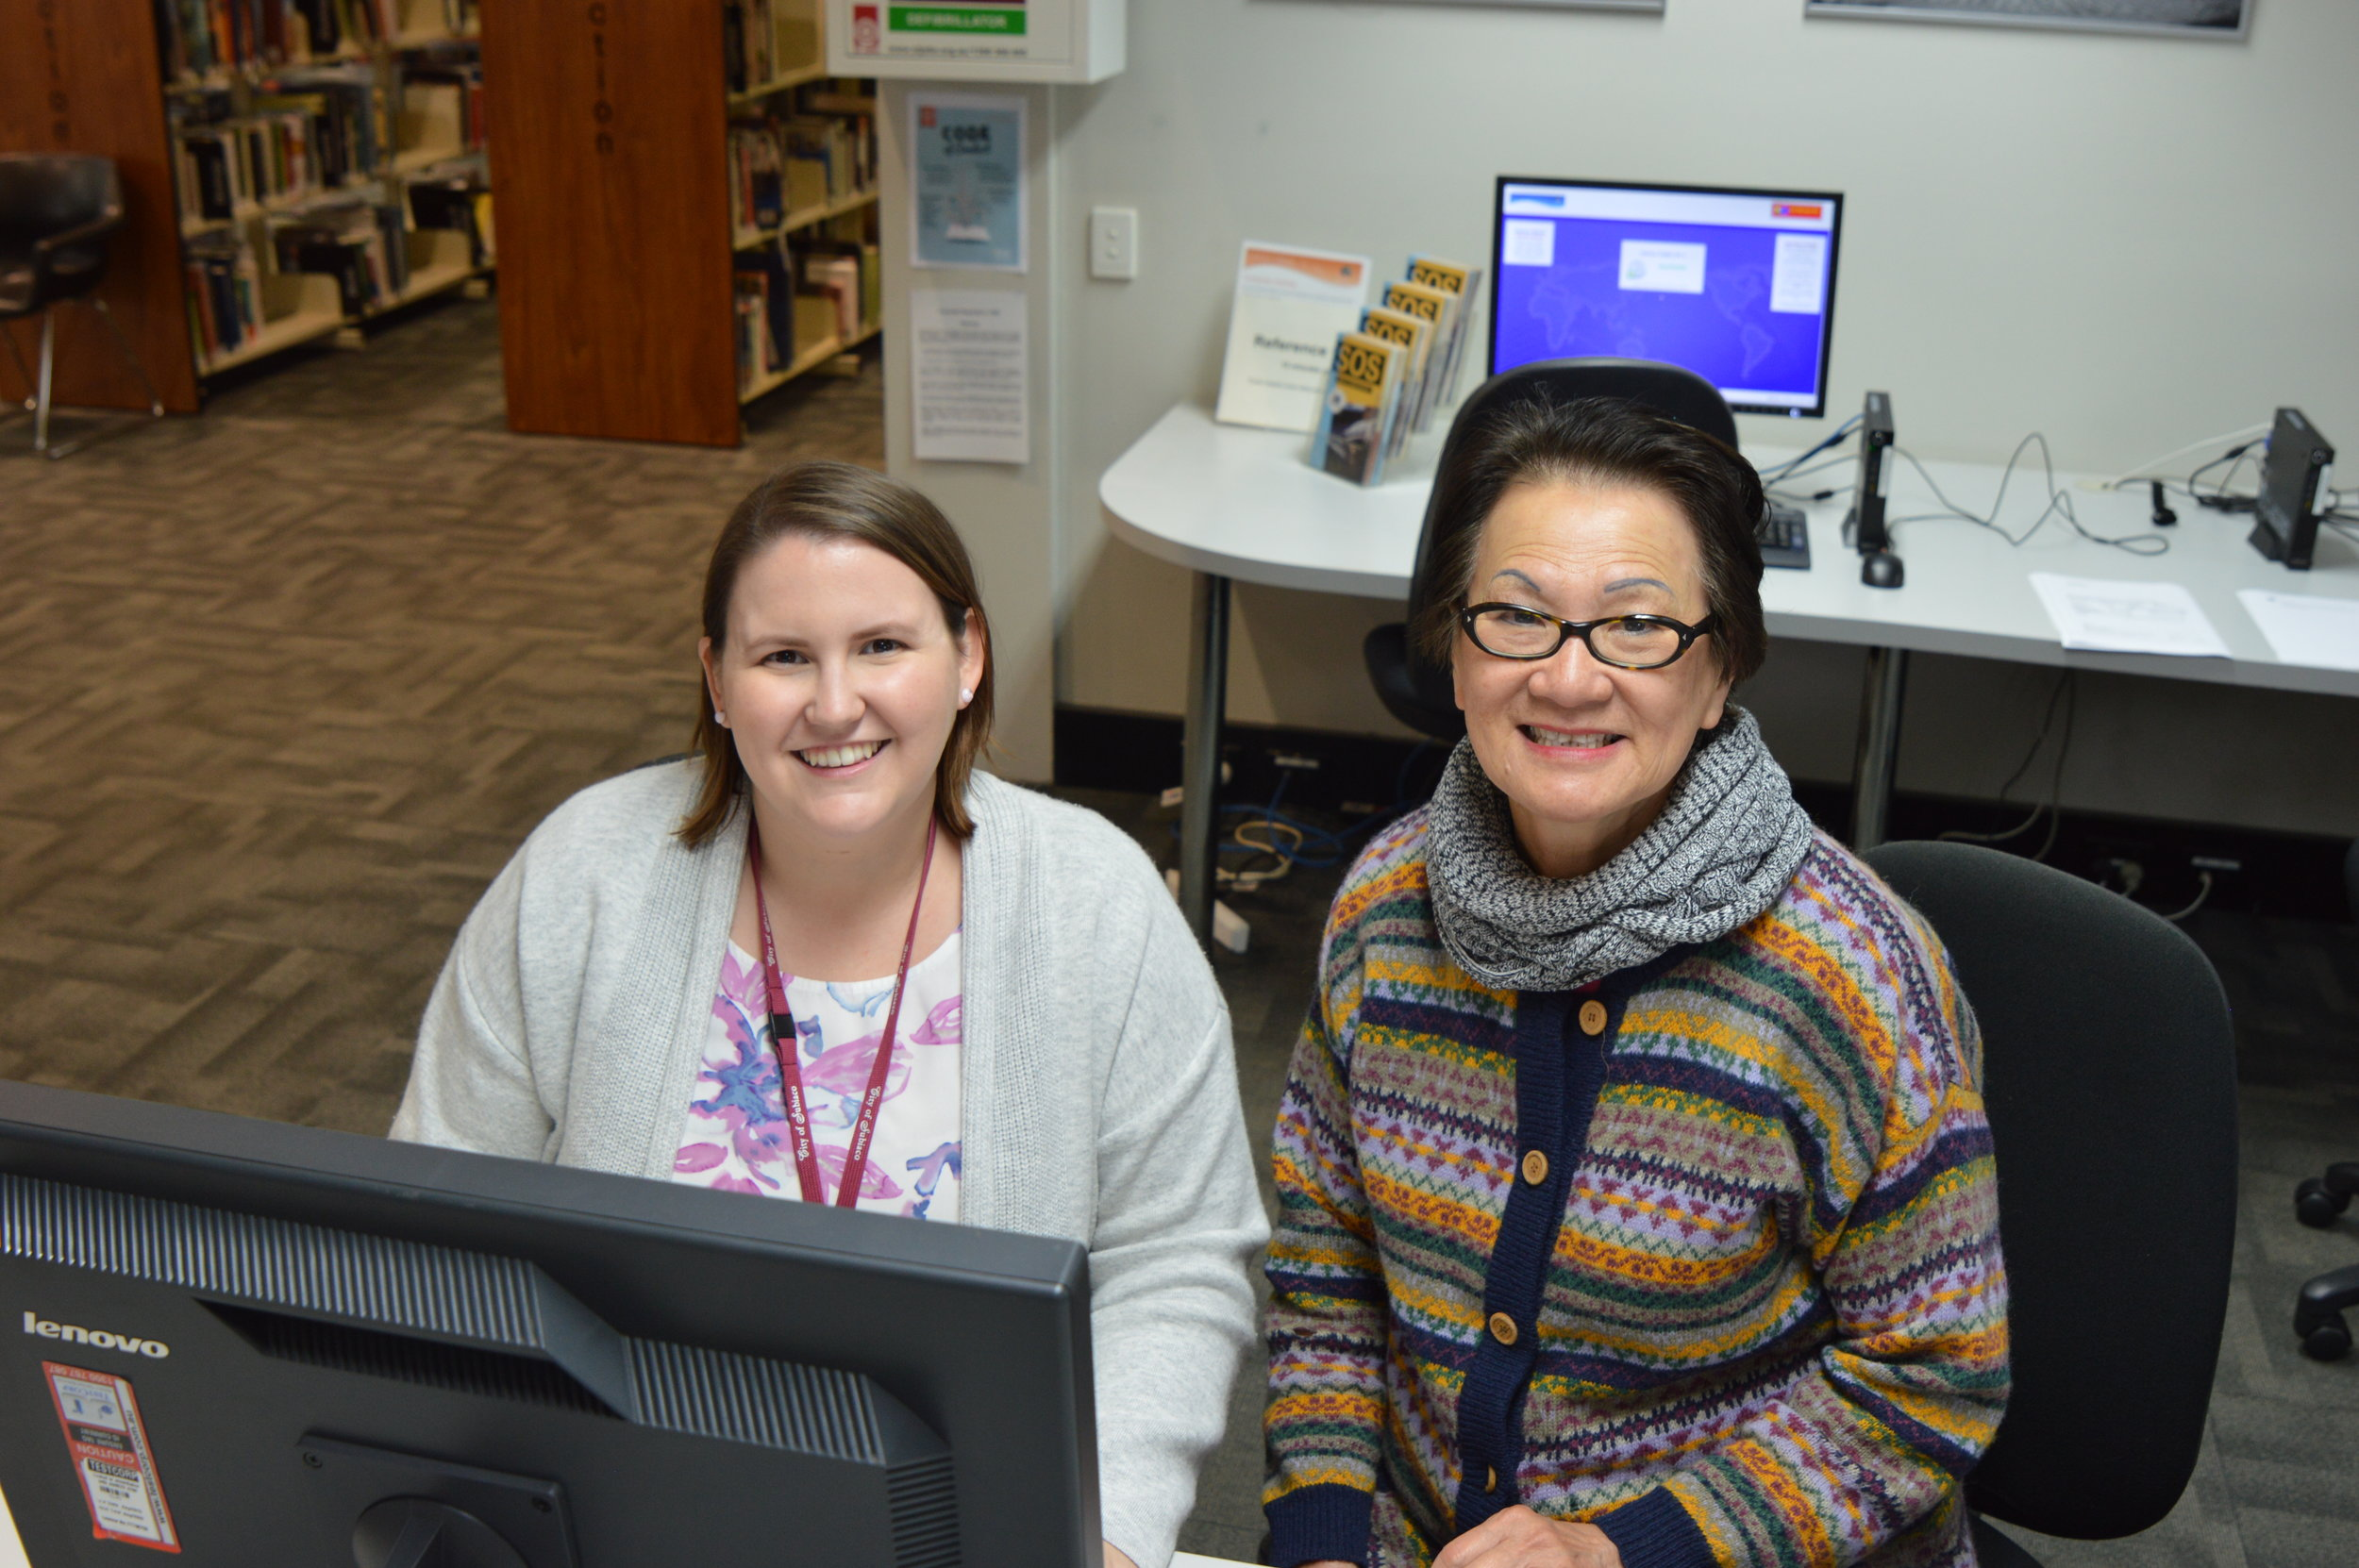 OUR DIGICATION PROGRAM - Our library based Digication program aims to improve digital literacy of the community by providing one-on-one and group sessions with a tutor who has expertise in a wide range of technical skills.